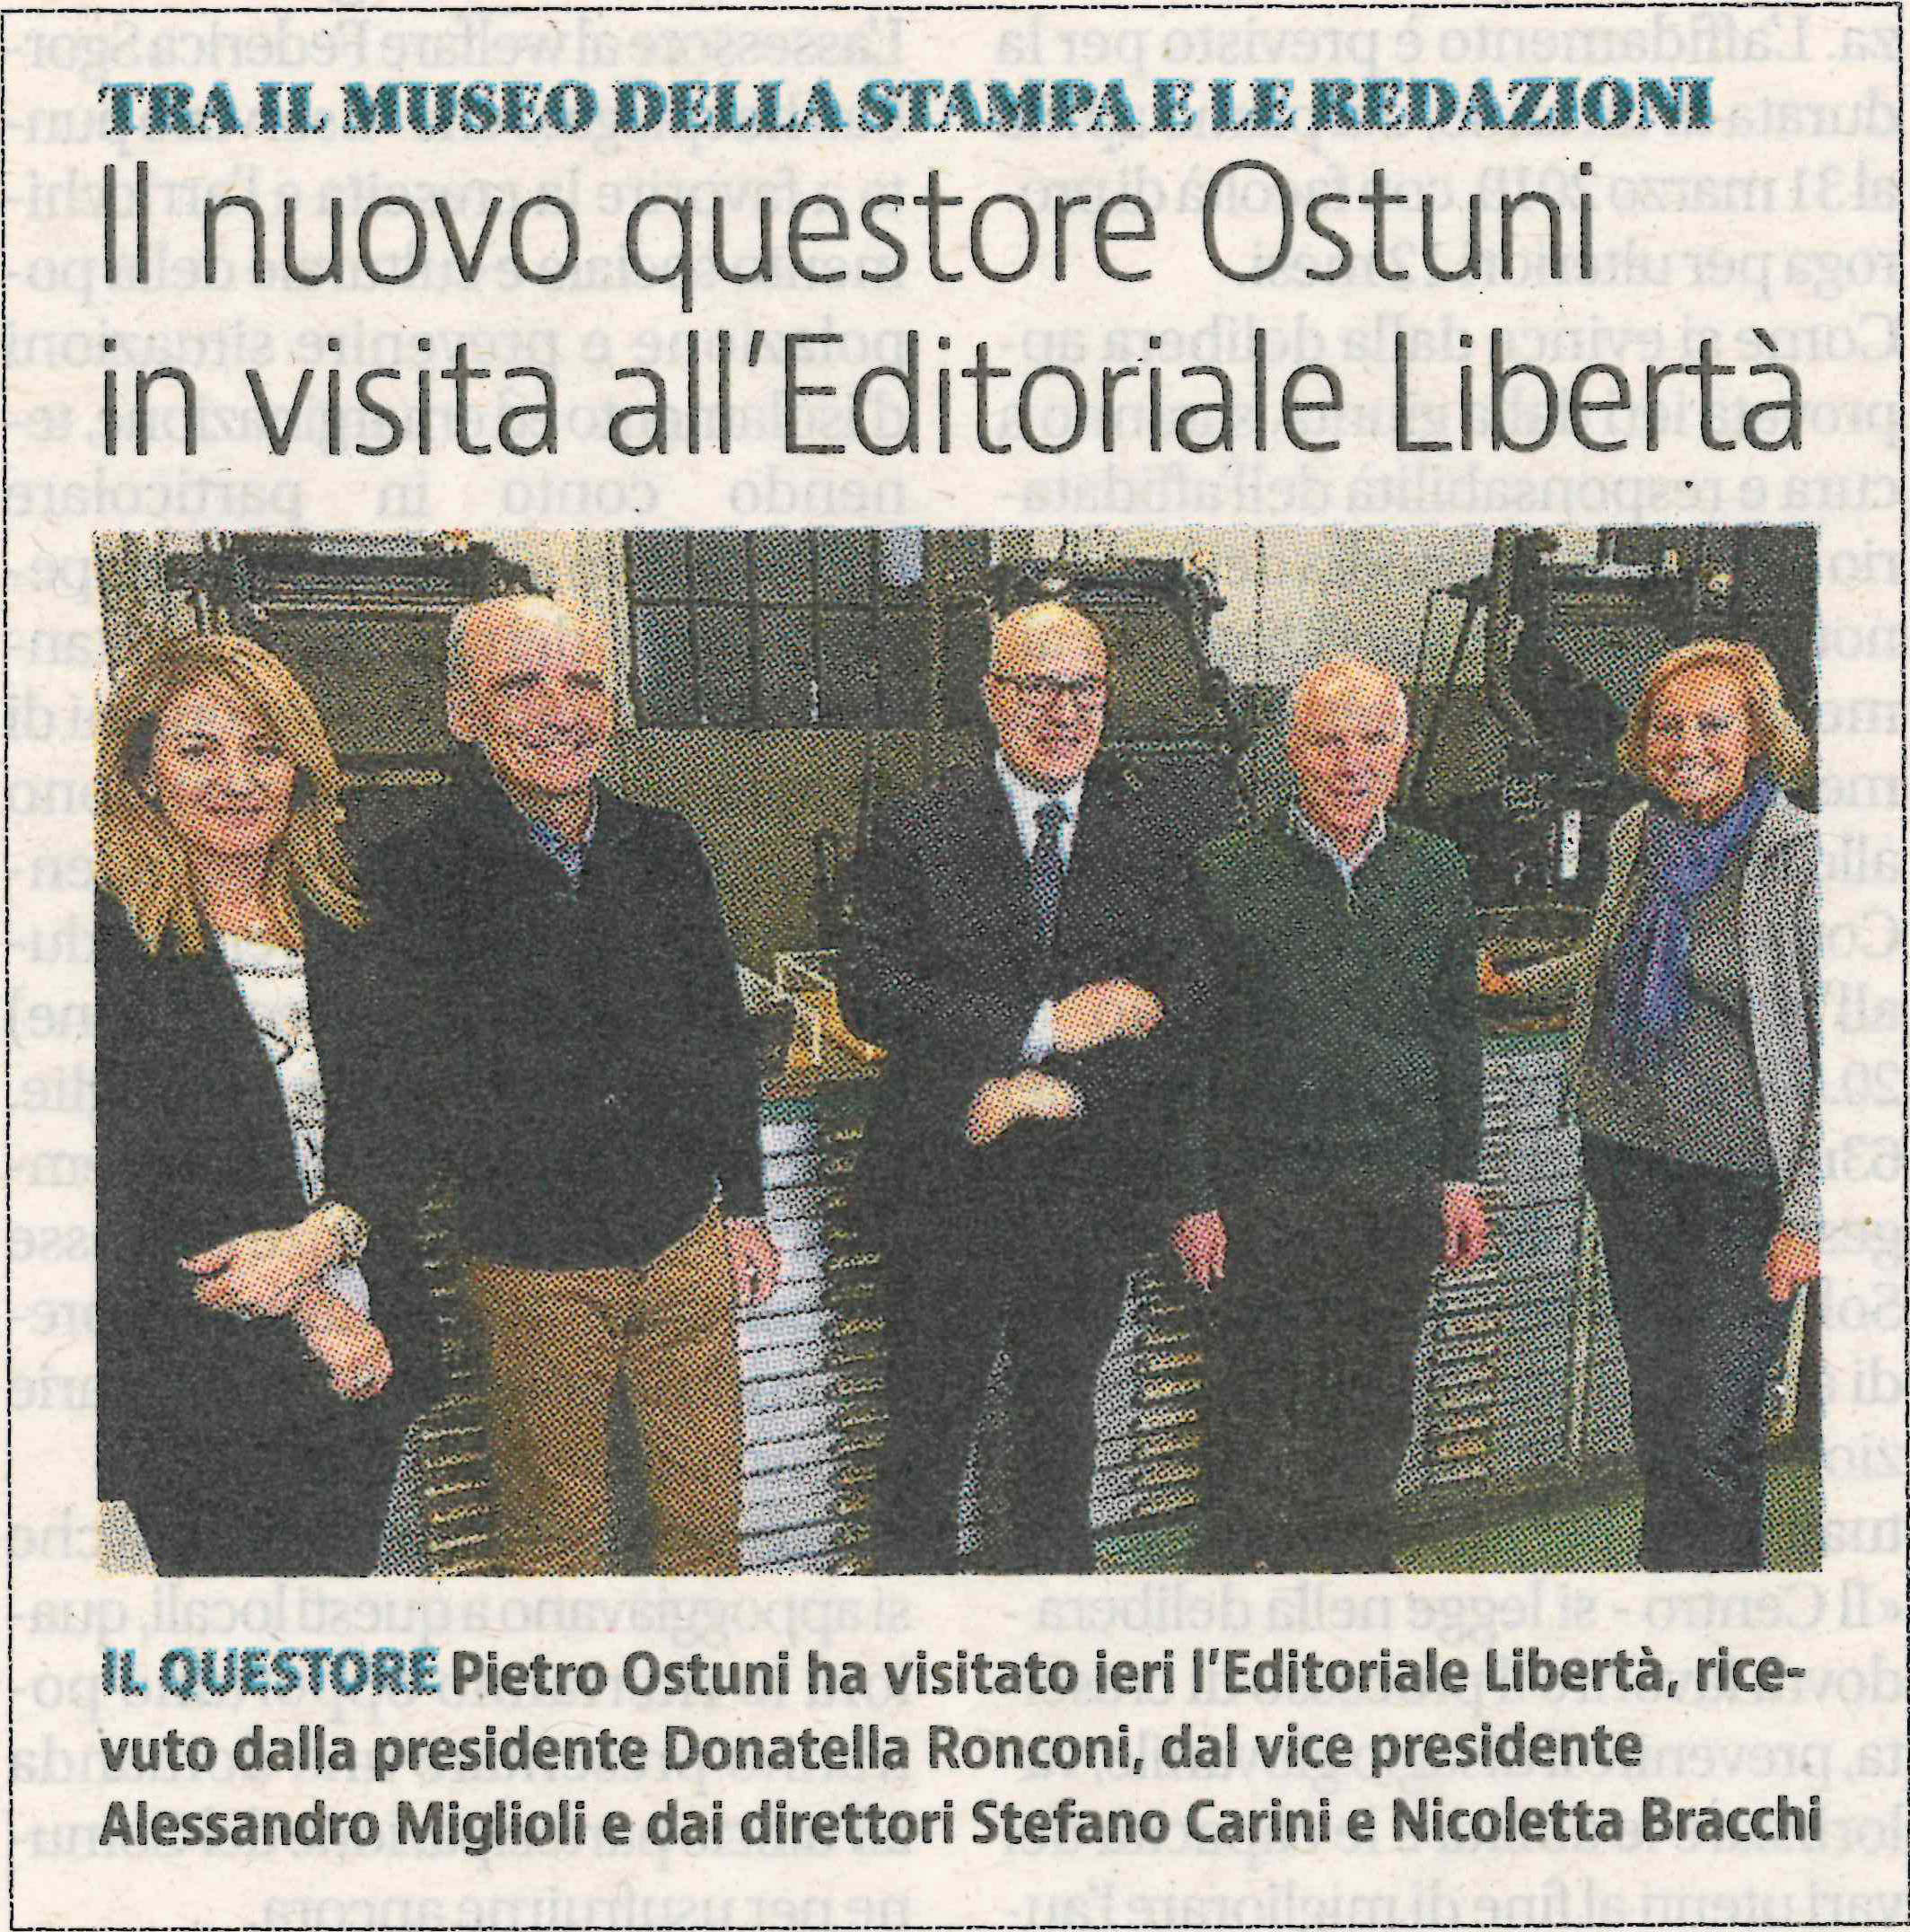 Il Questore Ostuni in visita all'editoriale Libertà.